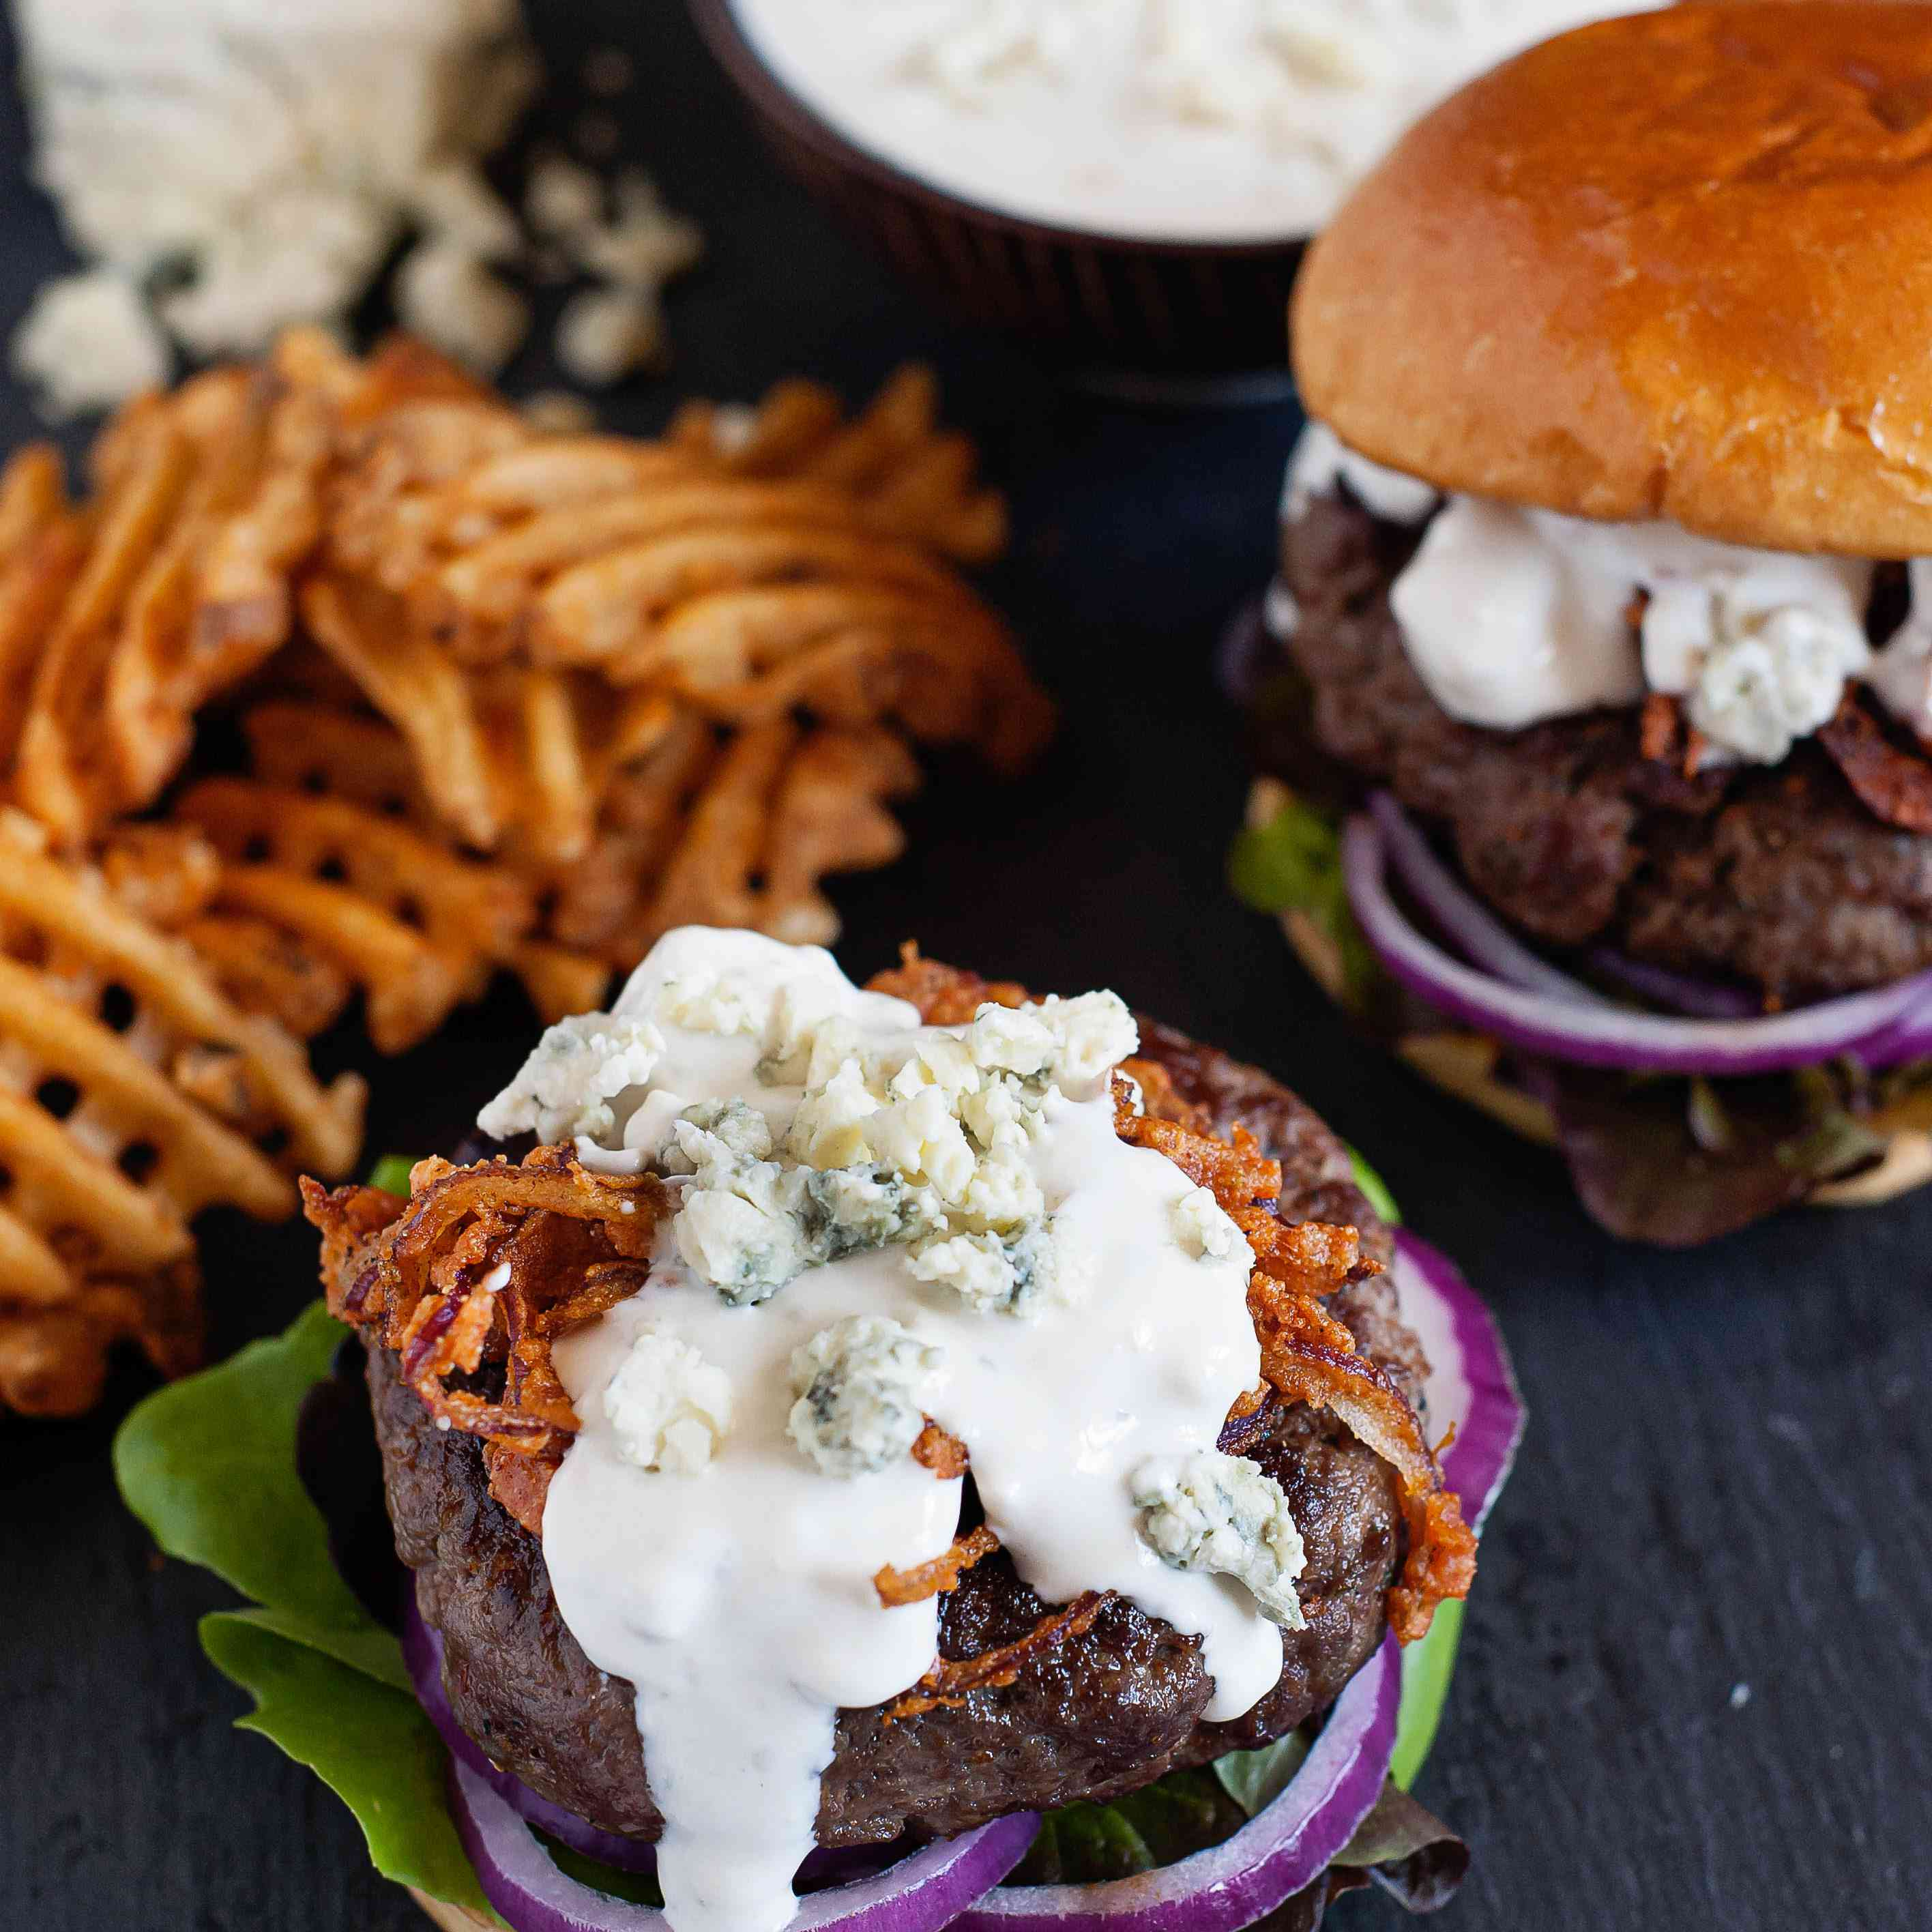 Homemade Blue Cheese Sauce - blue cheese sauce on a hamburger with fries in the background